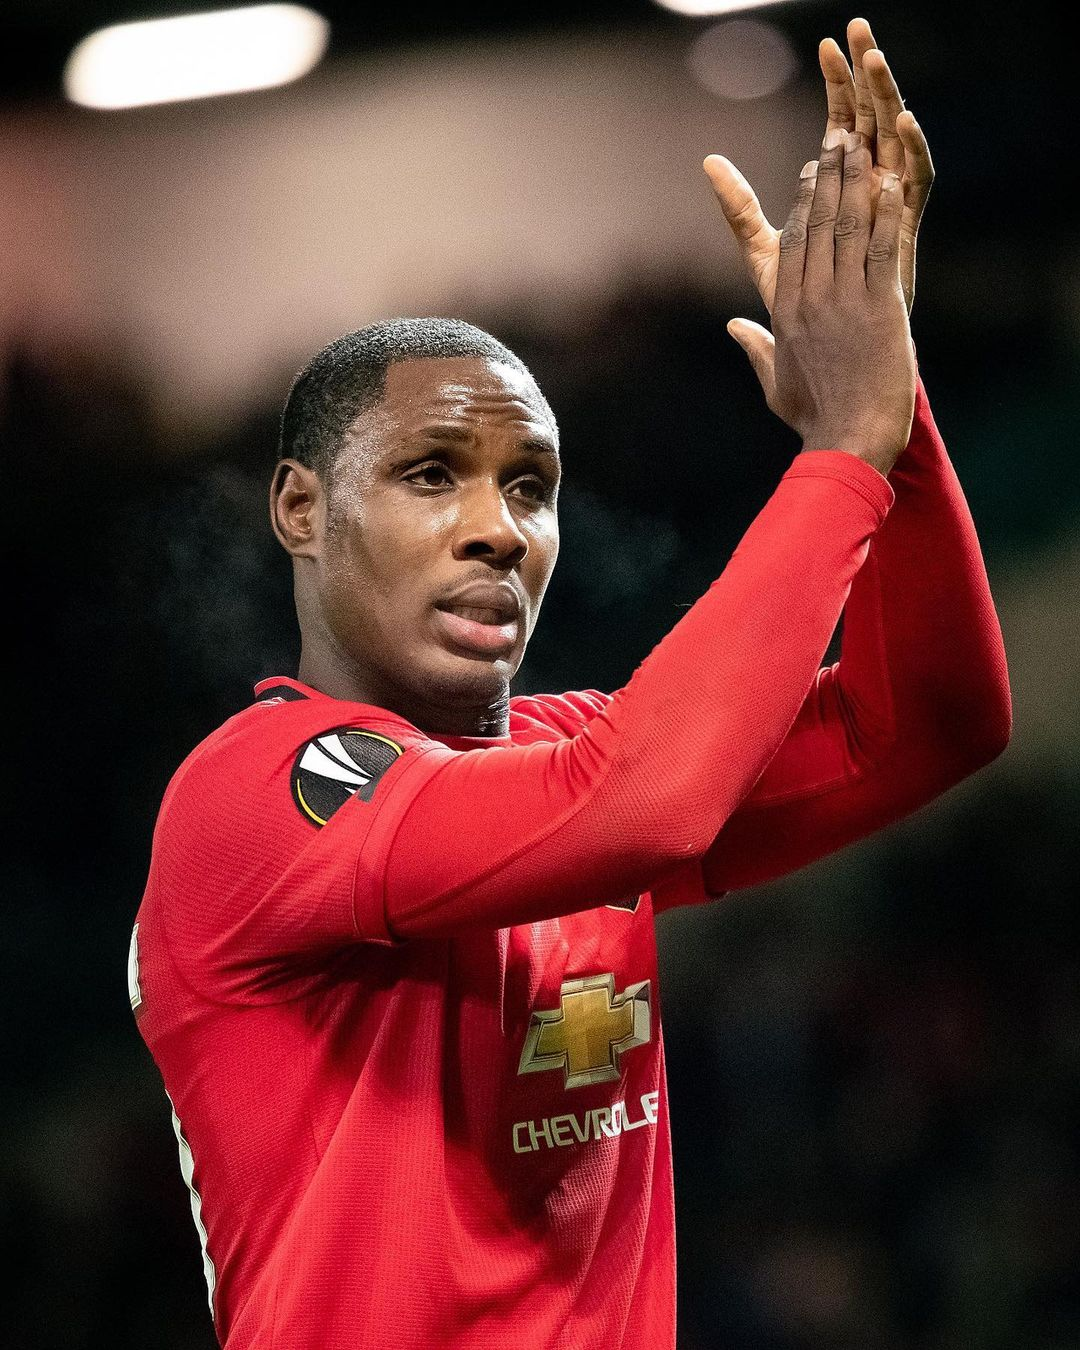 Odion Ighalo Reportedly Agrees To Join Saudi Arabian Club Al-Shabab From Shanghai Shenhua After Loan Spell At Manchester United